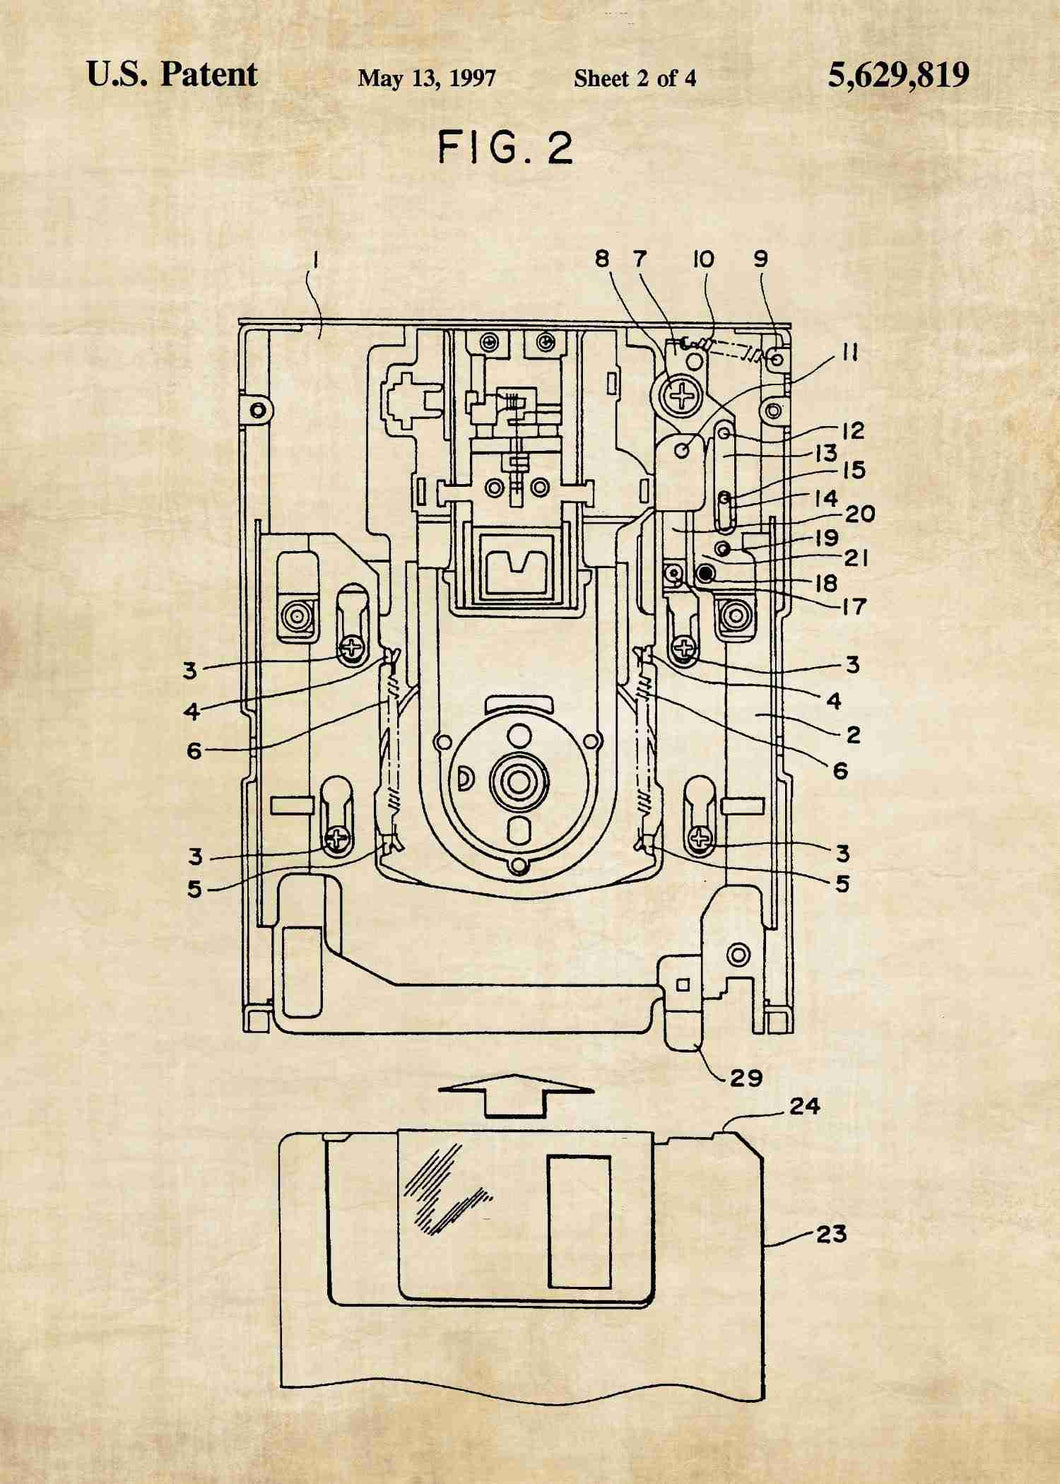 floppy disk drive patent print, floppy disk poster in the style vintage